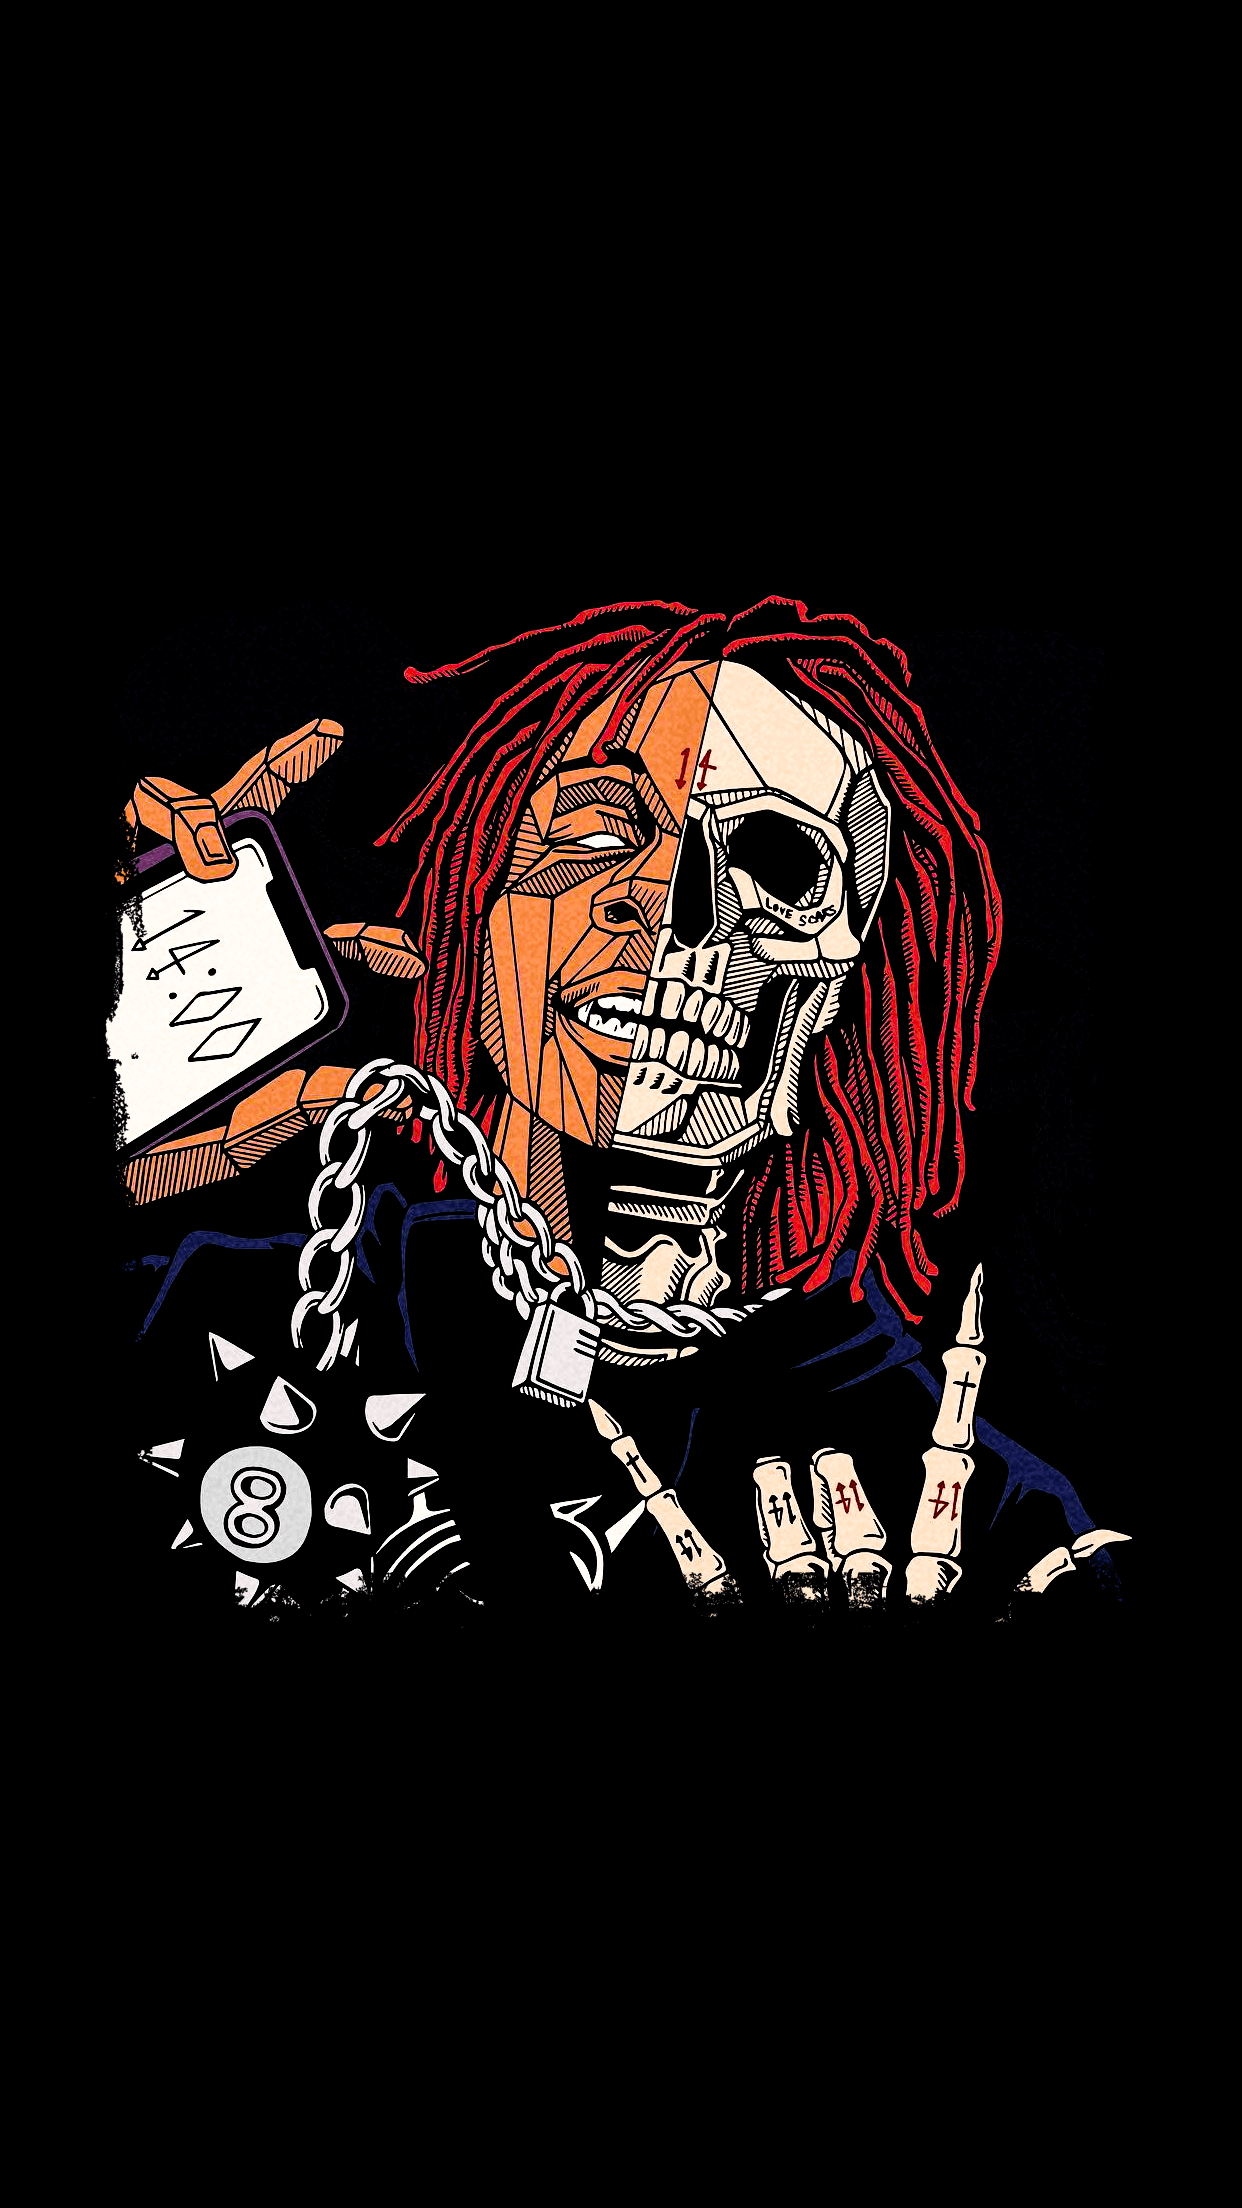 Trippie Redd Animated Wallpapers - Wallpaper Cave